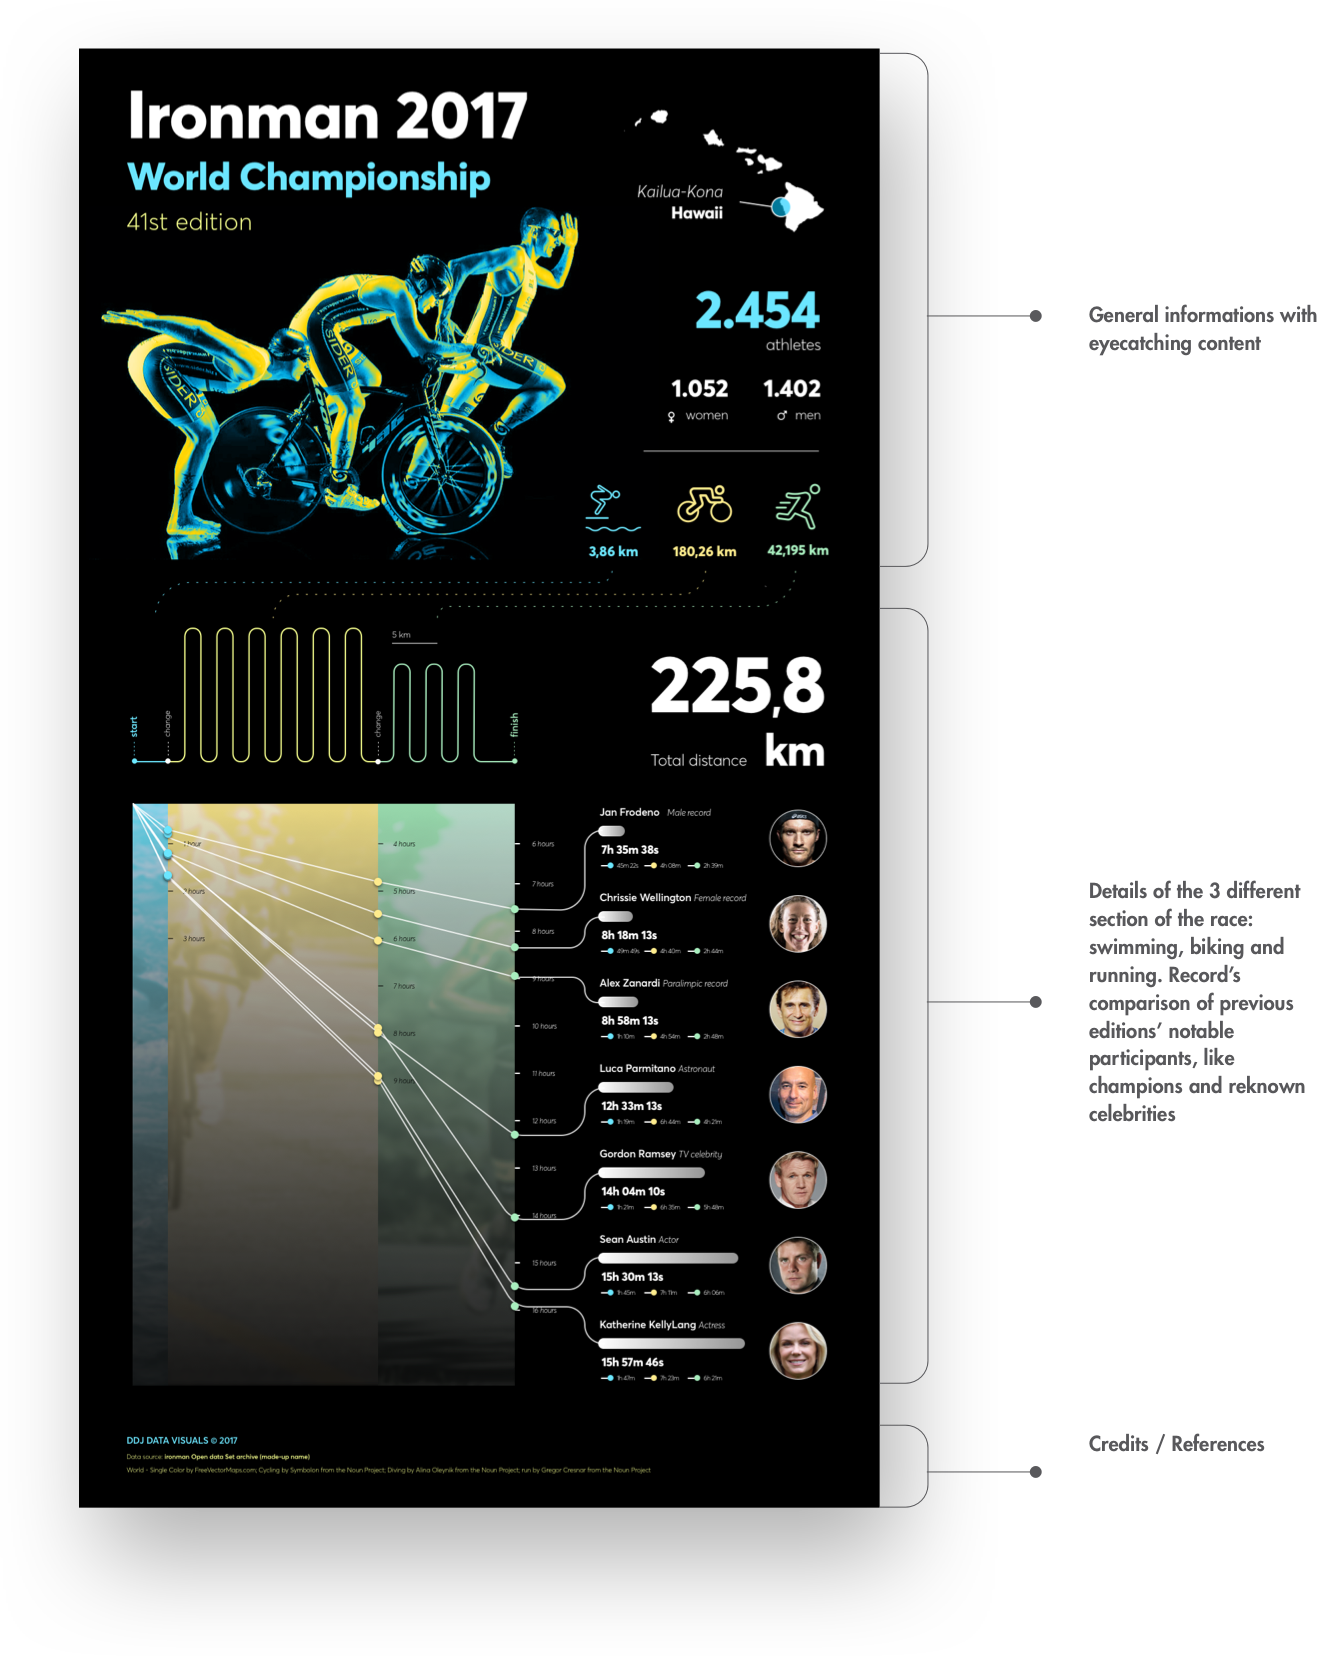 Sections of the Ironman World Championship 2017 Data Visualization by Fabio Besti